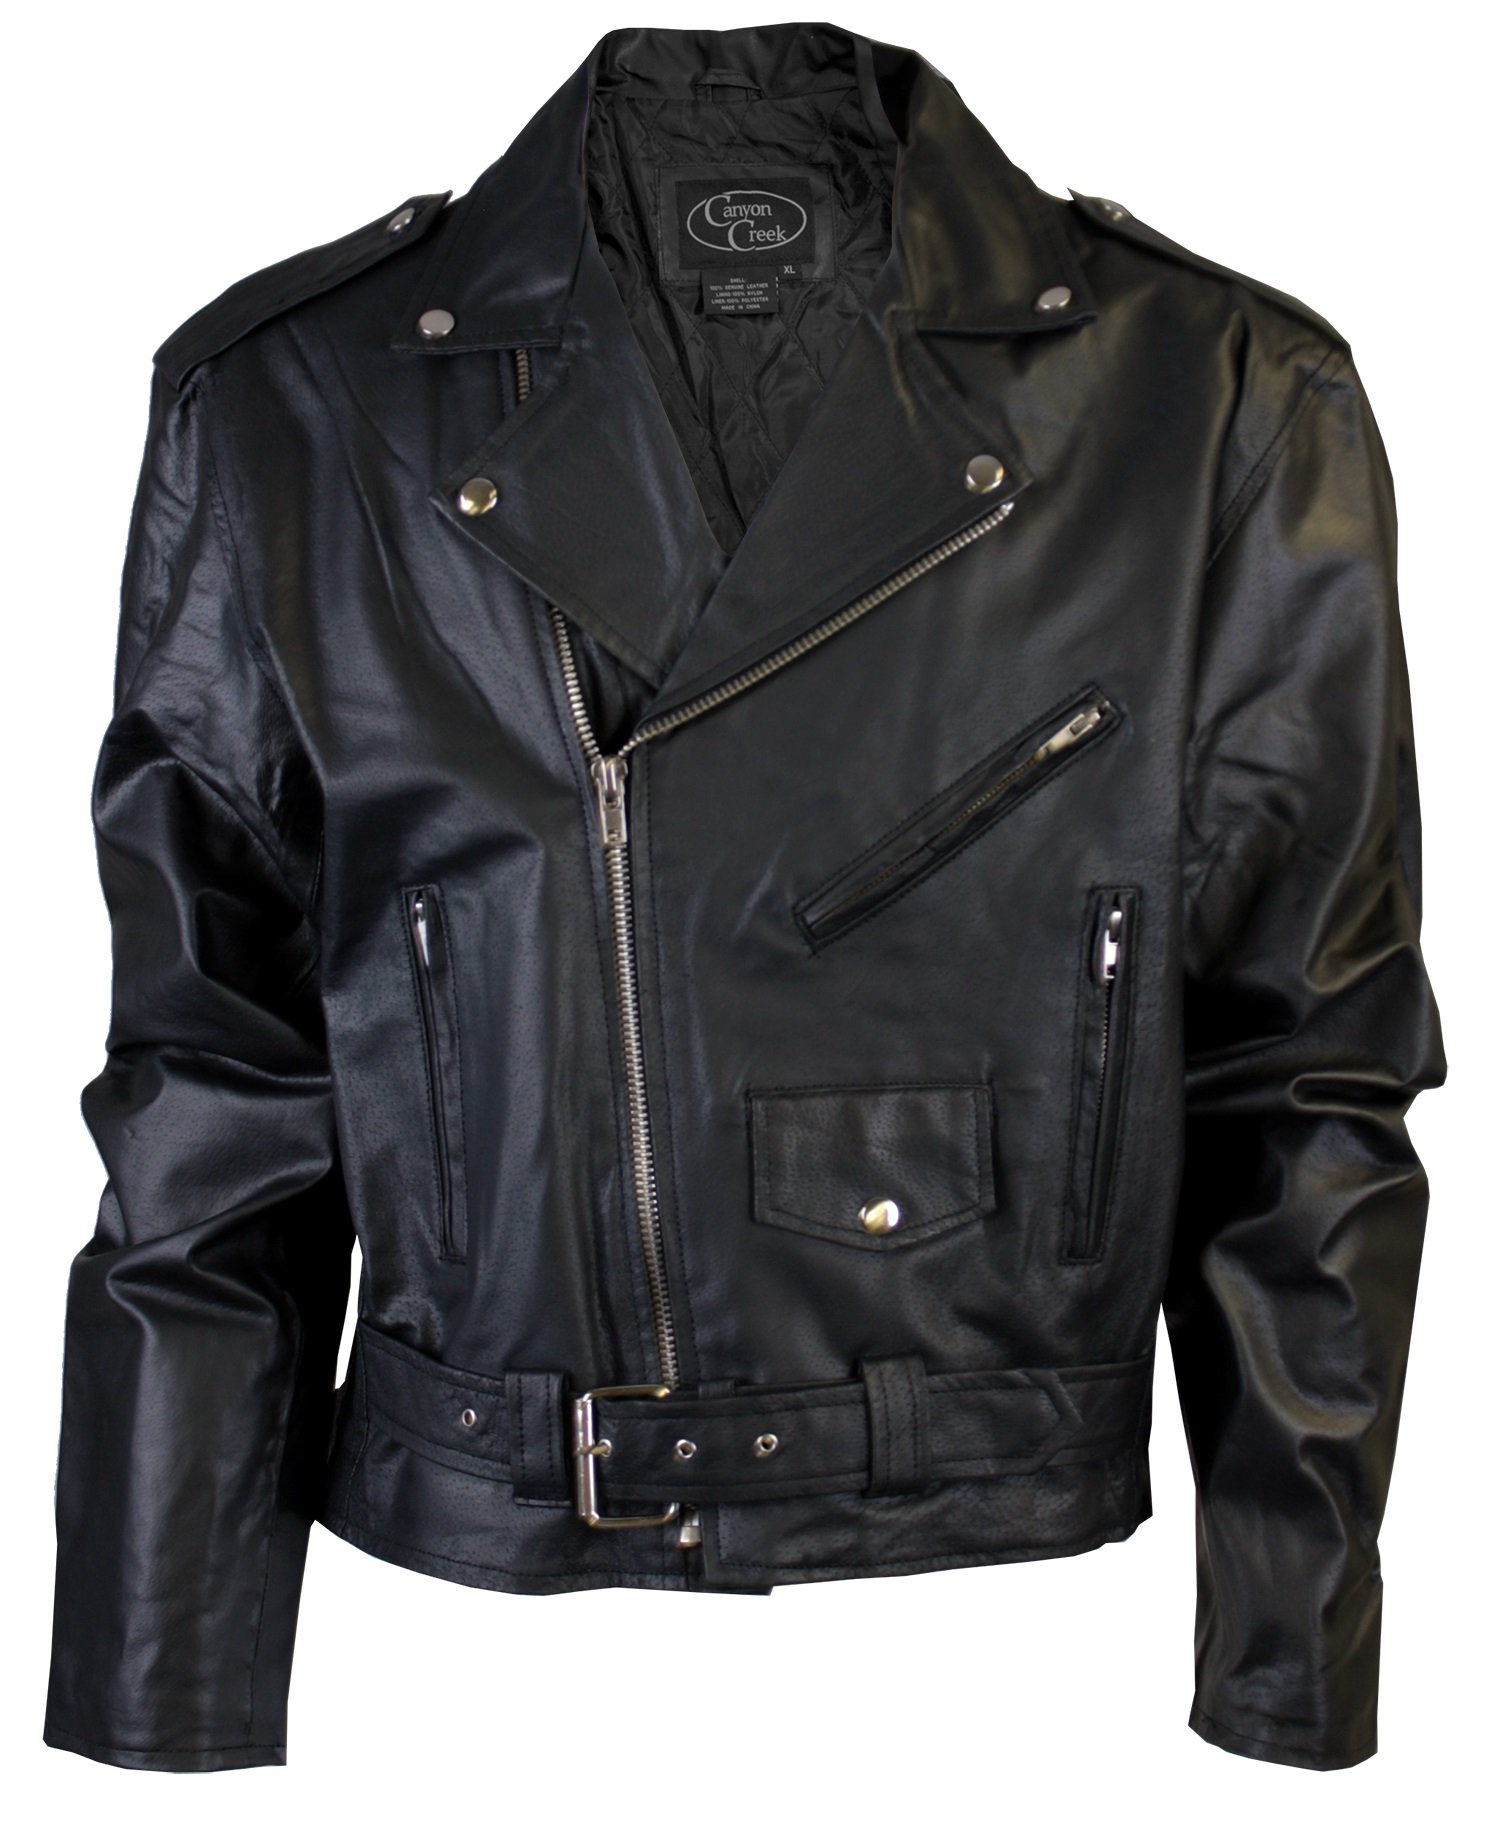 Canyon Creek Classic Men's Black Motorcycle Biker Jacket with Pockets (X-Large)